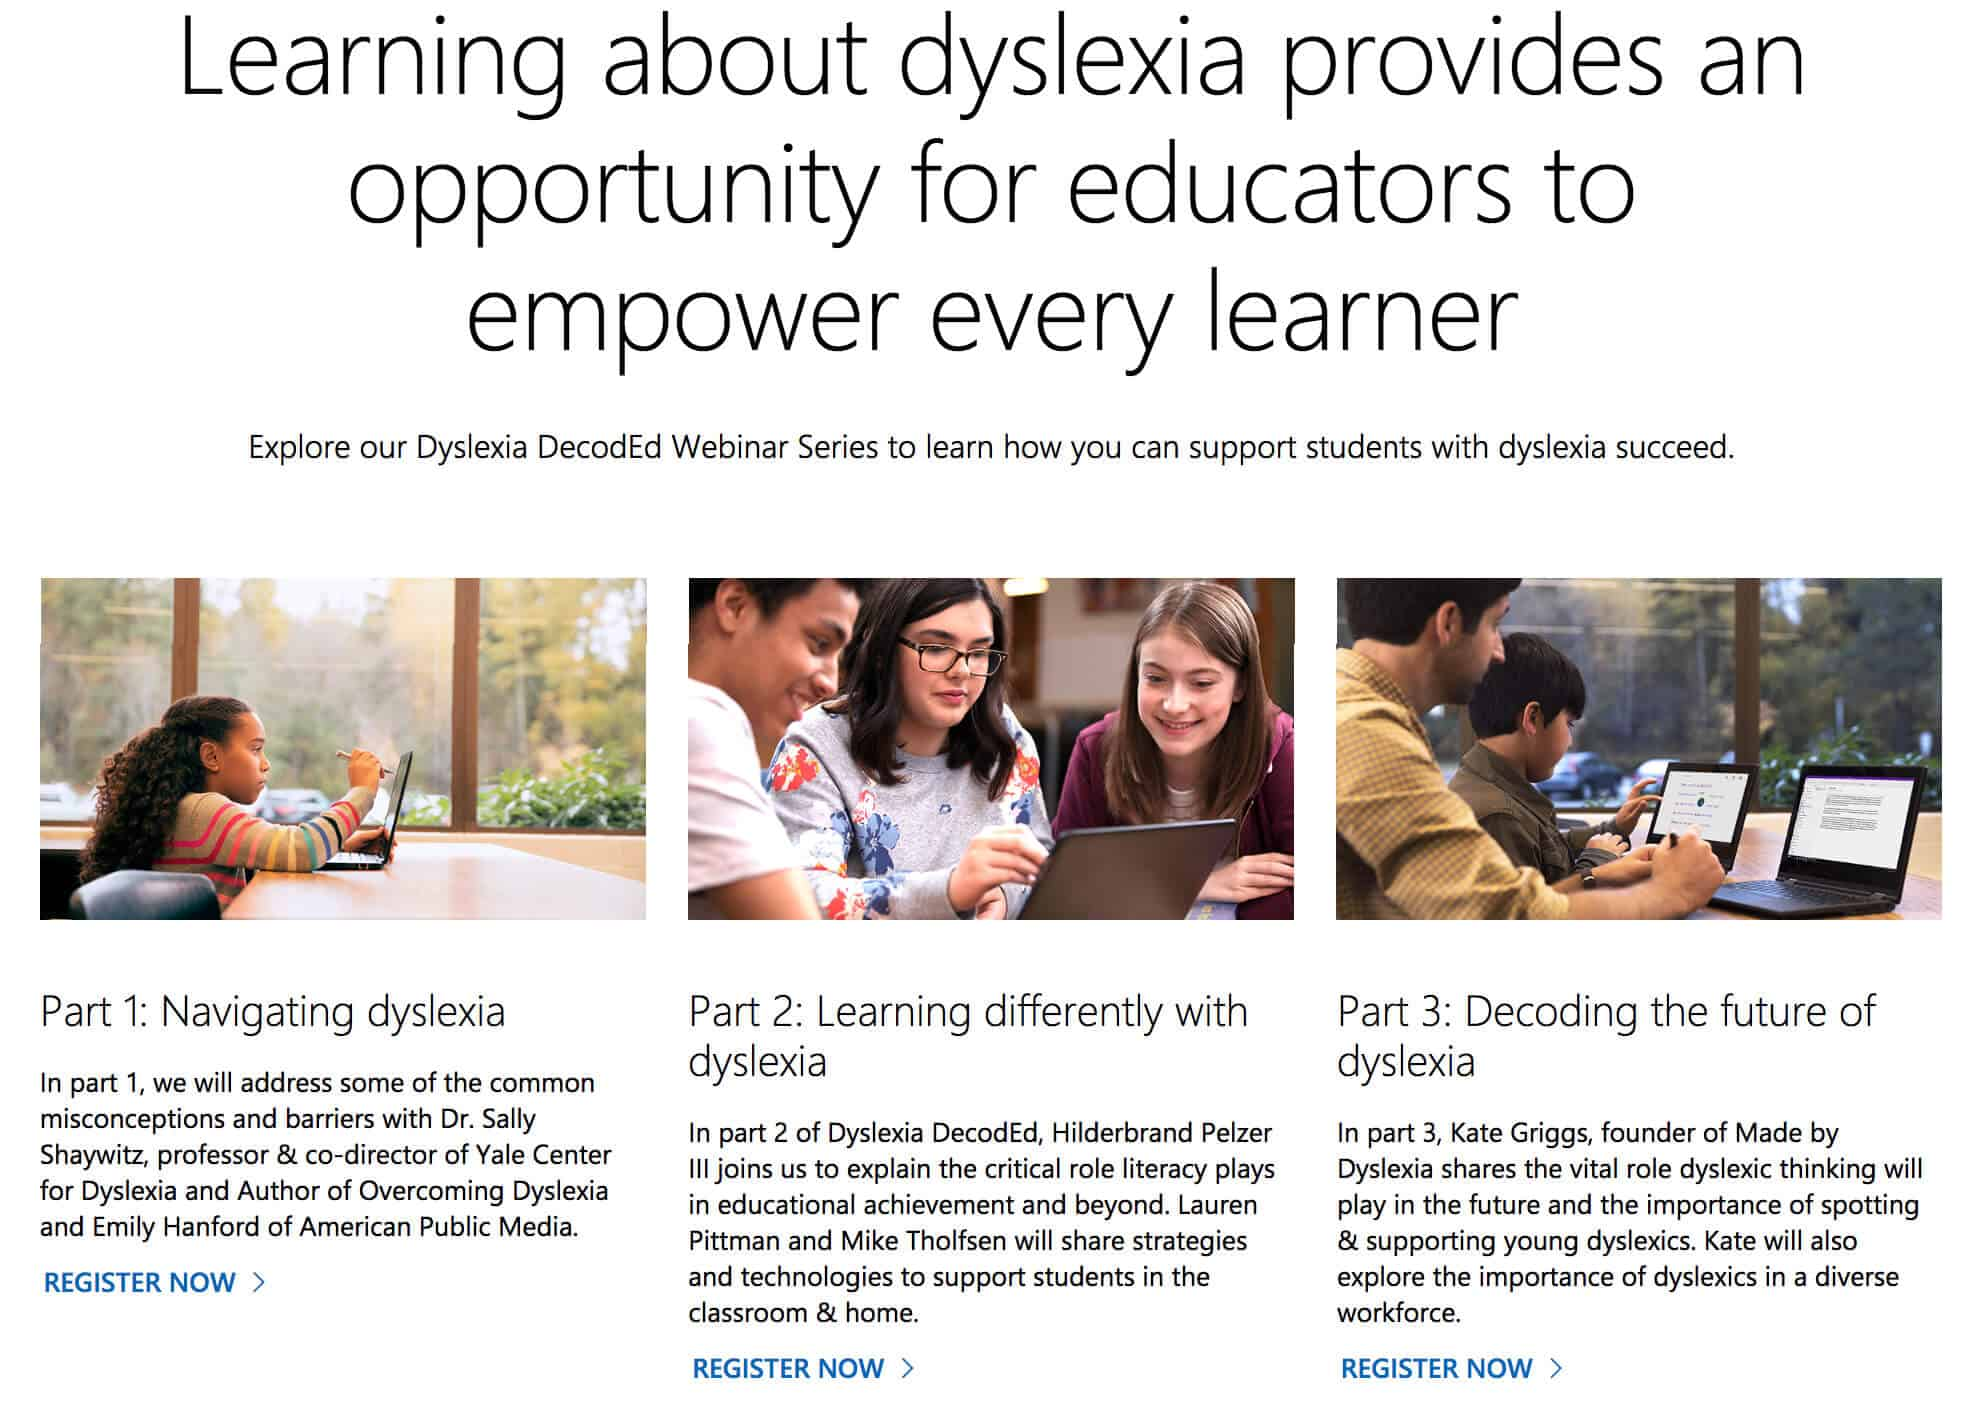 Dyslexia DecodEd series of webinars